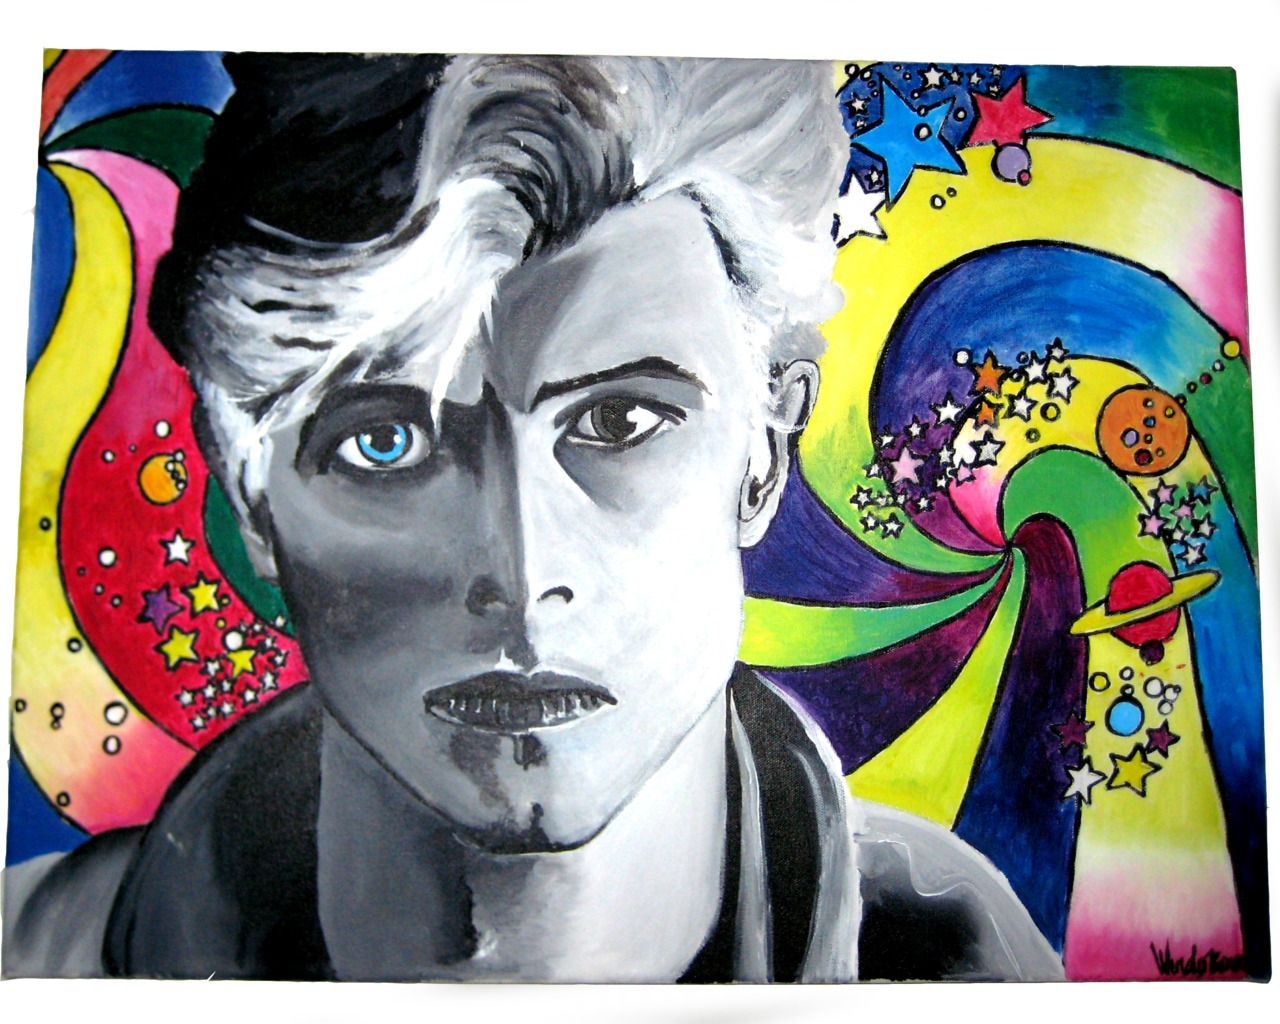 © WendyBird (Wendy Bowman) Ziggy Stardust, 2006, Acrylic on Canvas